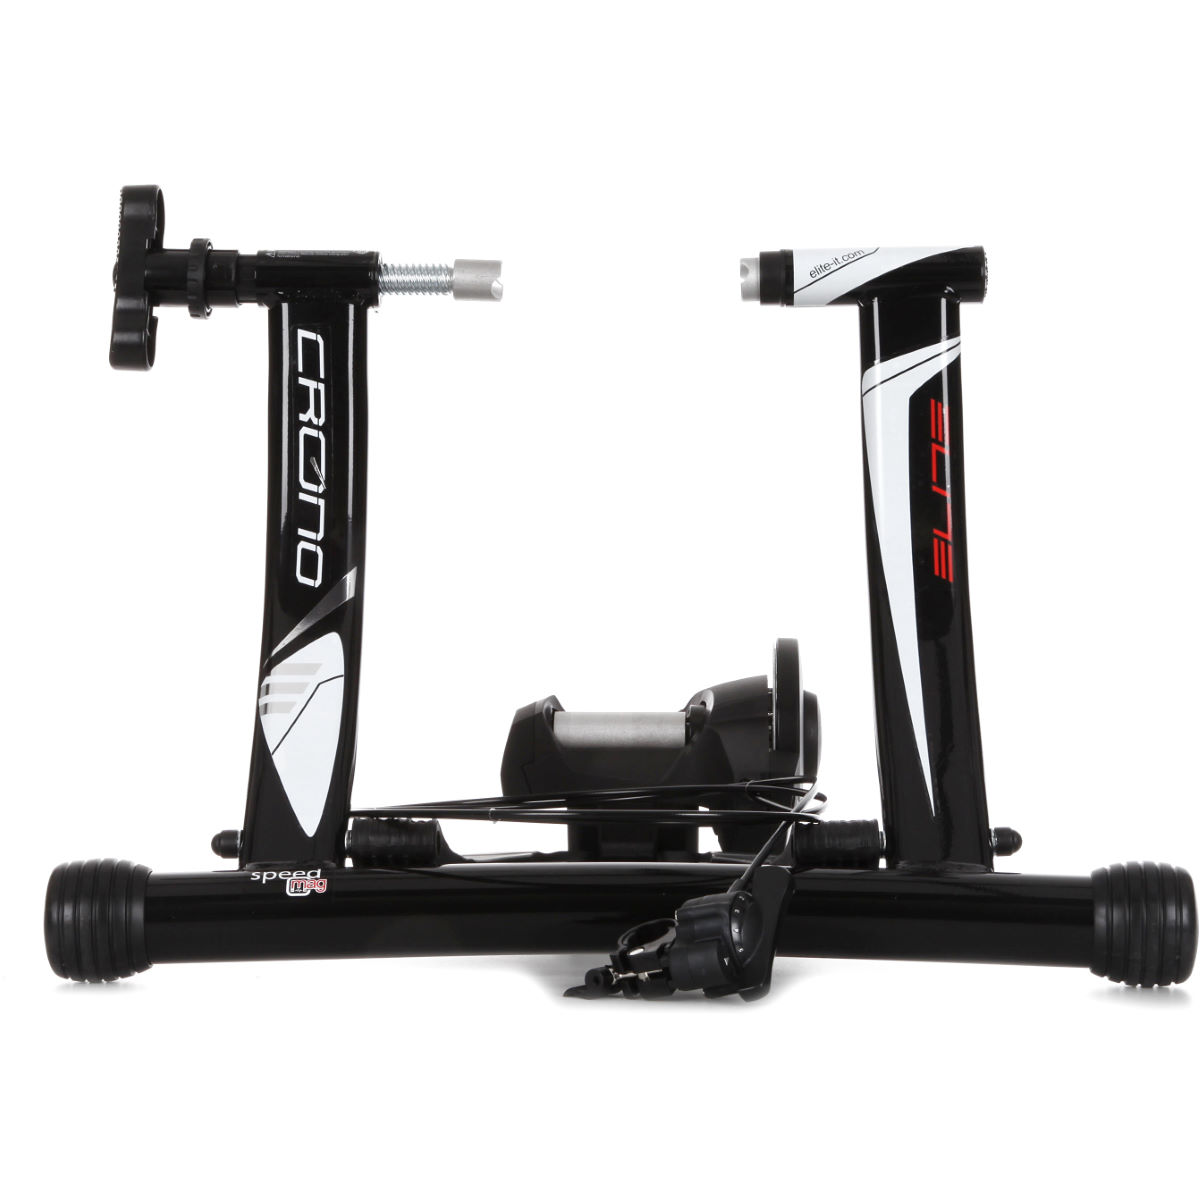 Home Trainer Elite Crono Mag Speed (aluminium) - Taille unique Noir/Blanc Home Trainer et rouleaux